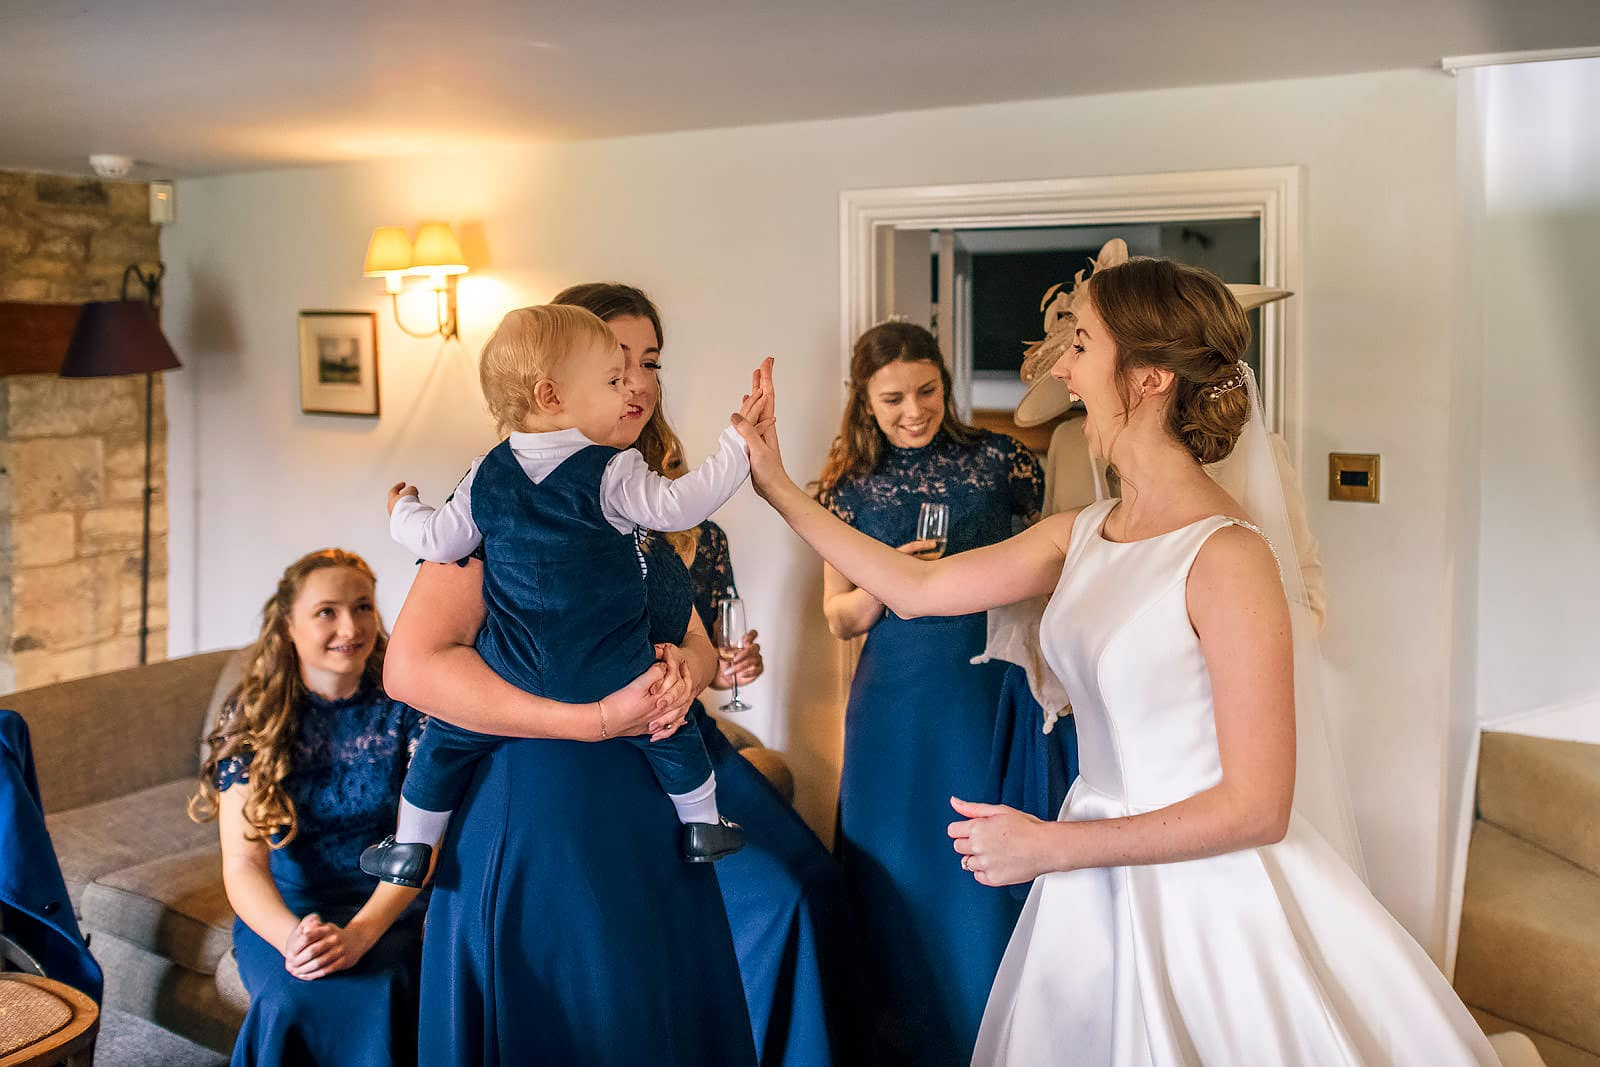 High fives for the bride and her son